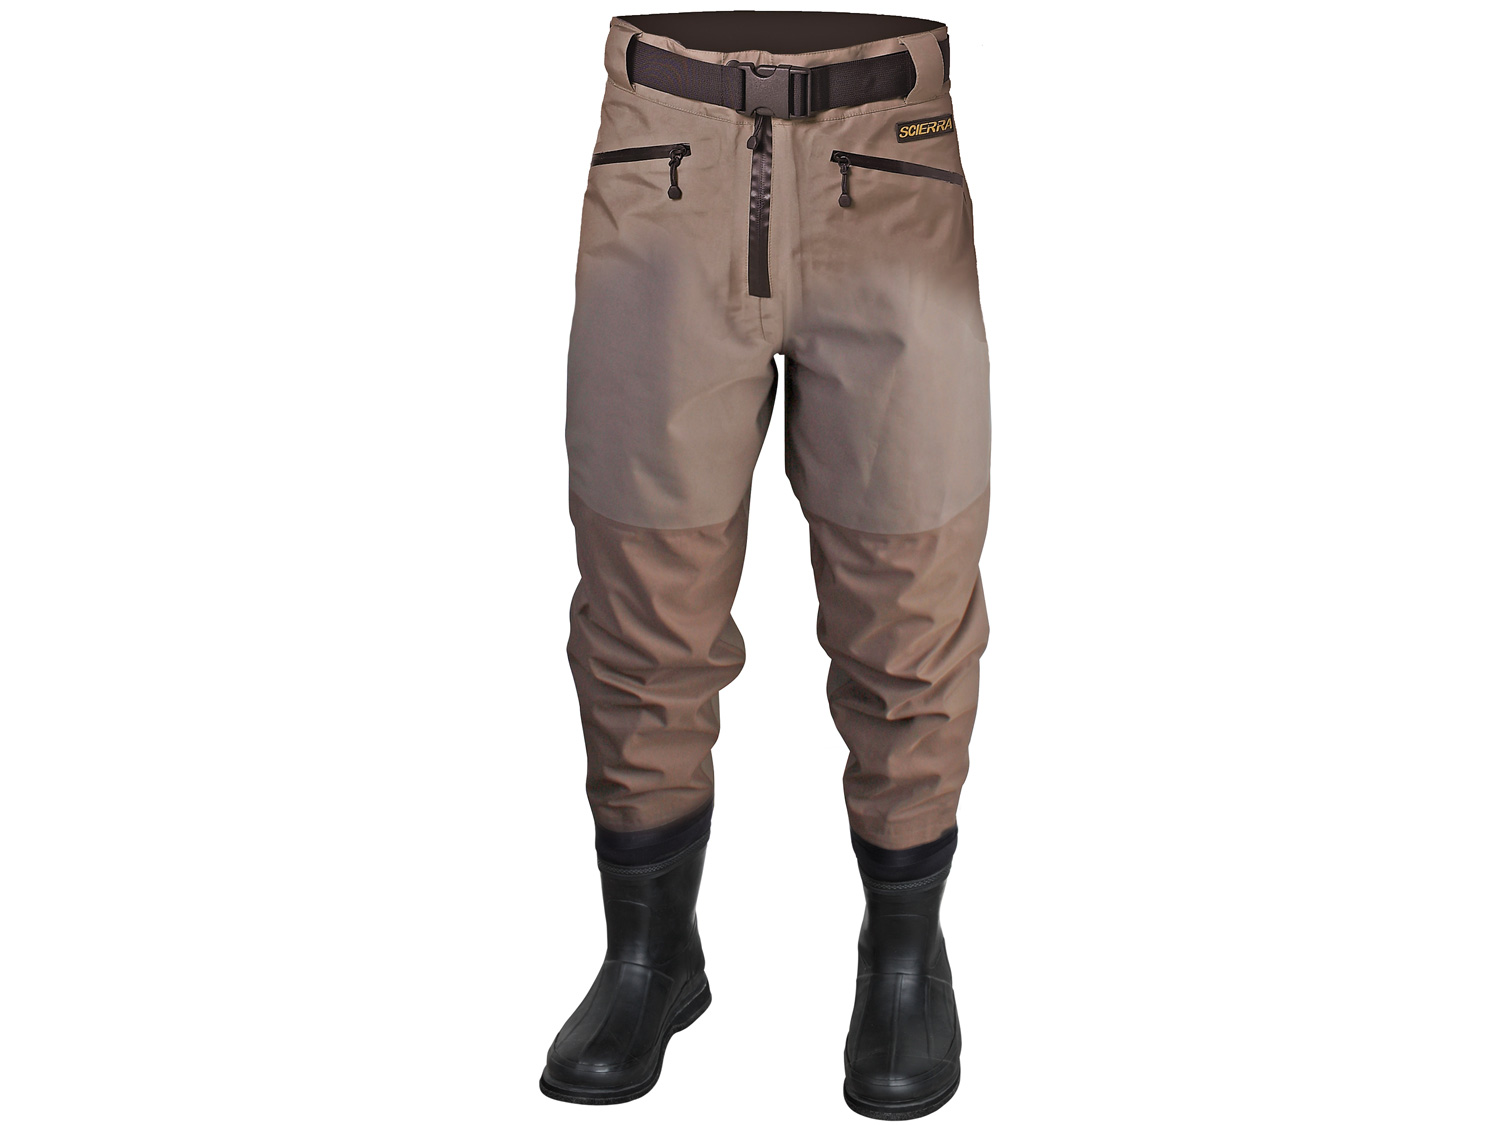 Scierra cc3 xp cleated foot wait waders fly fishing for Fly fishing waders